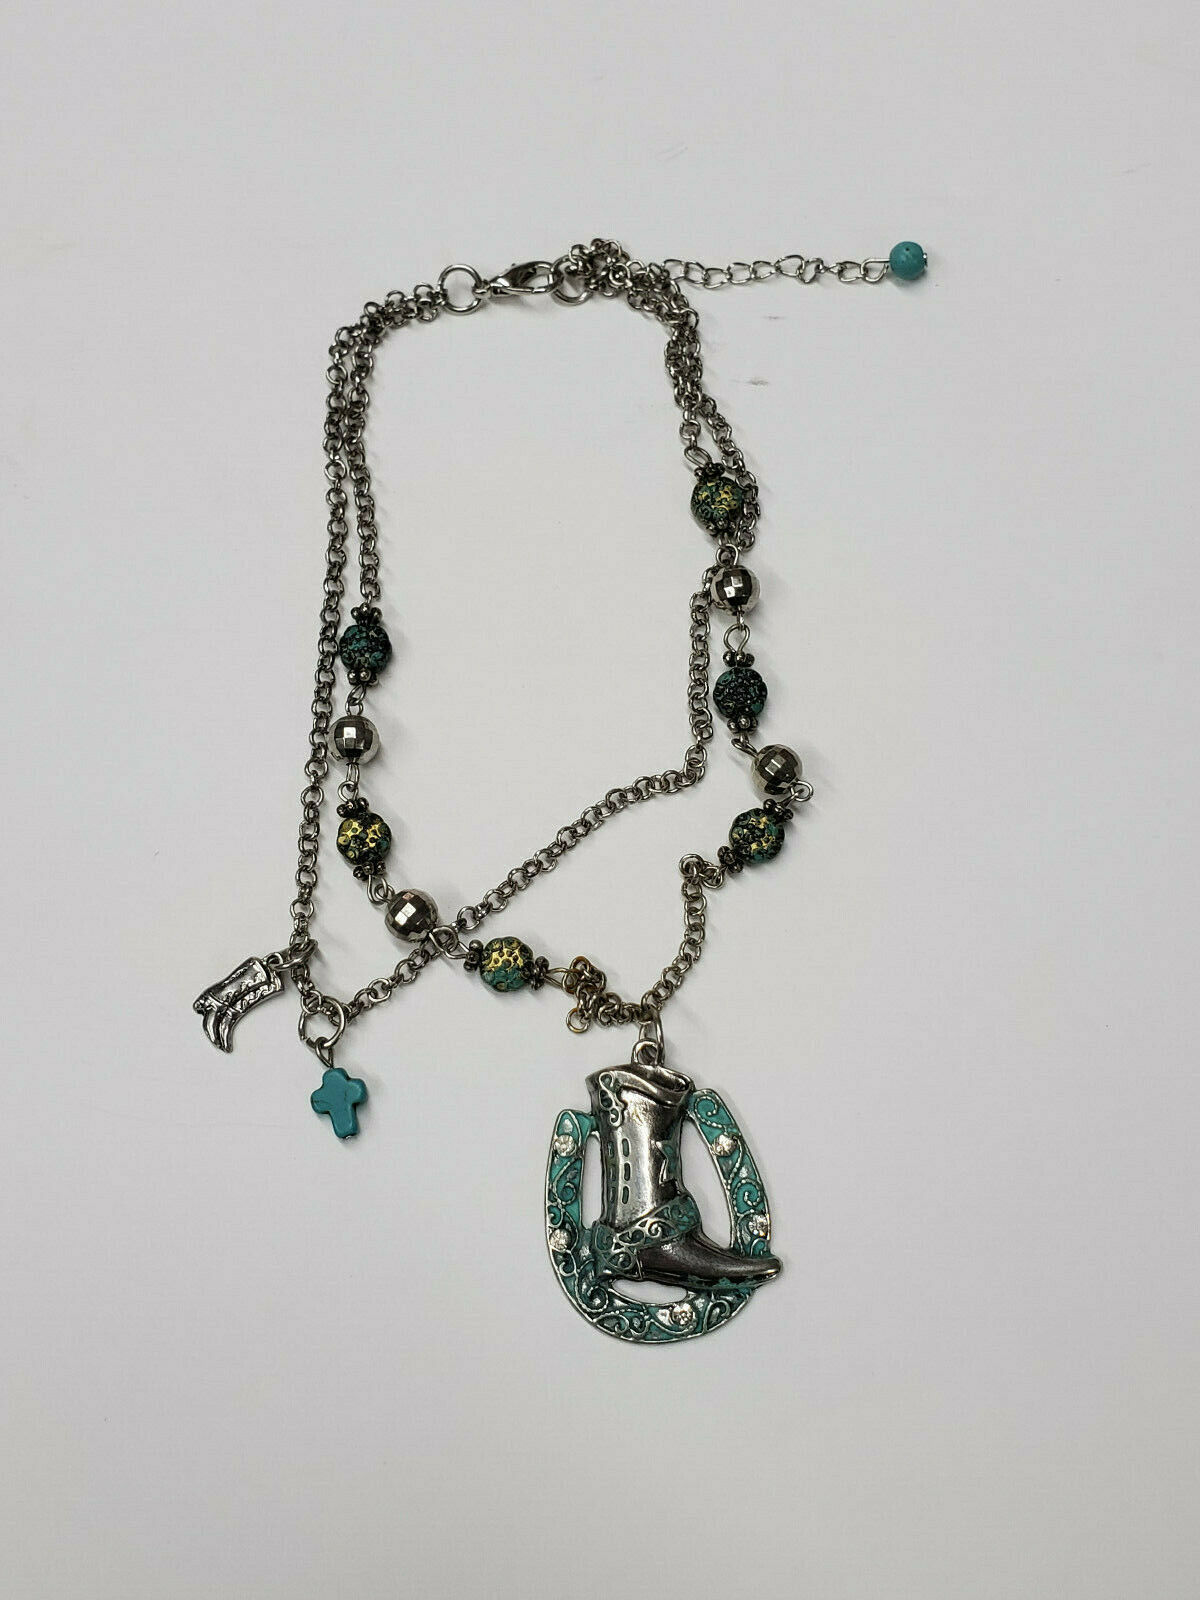 New western & Skull boot anklet chain charm jewelry from BHW & Crooked Fence